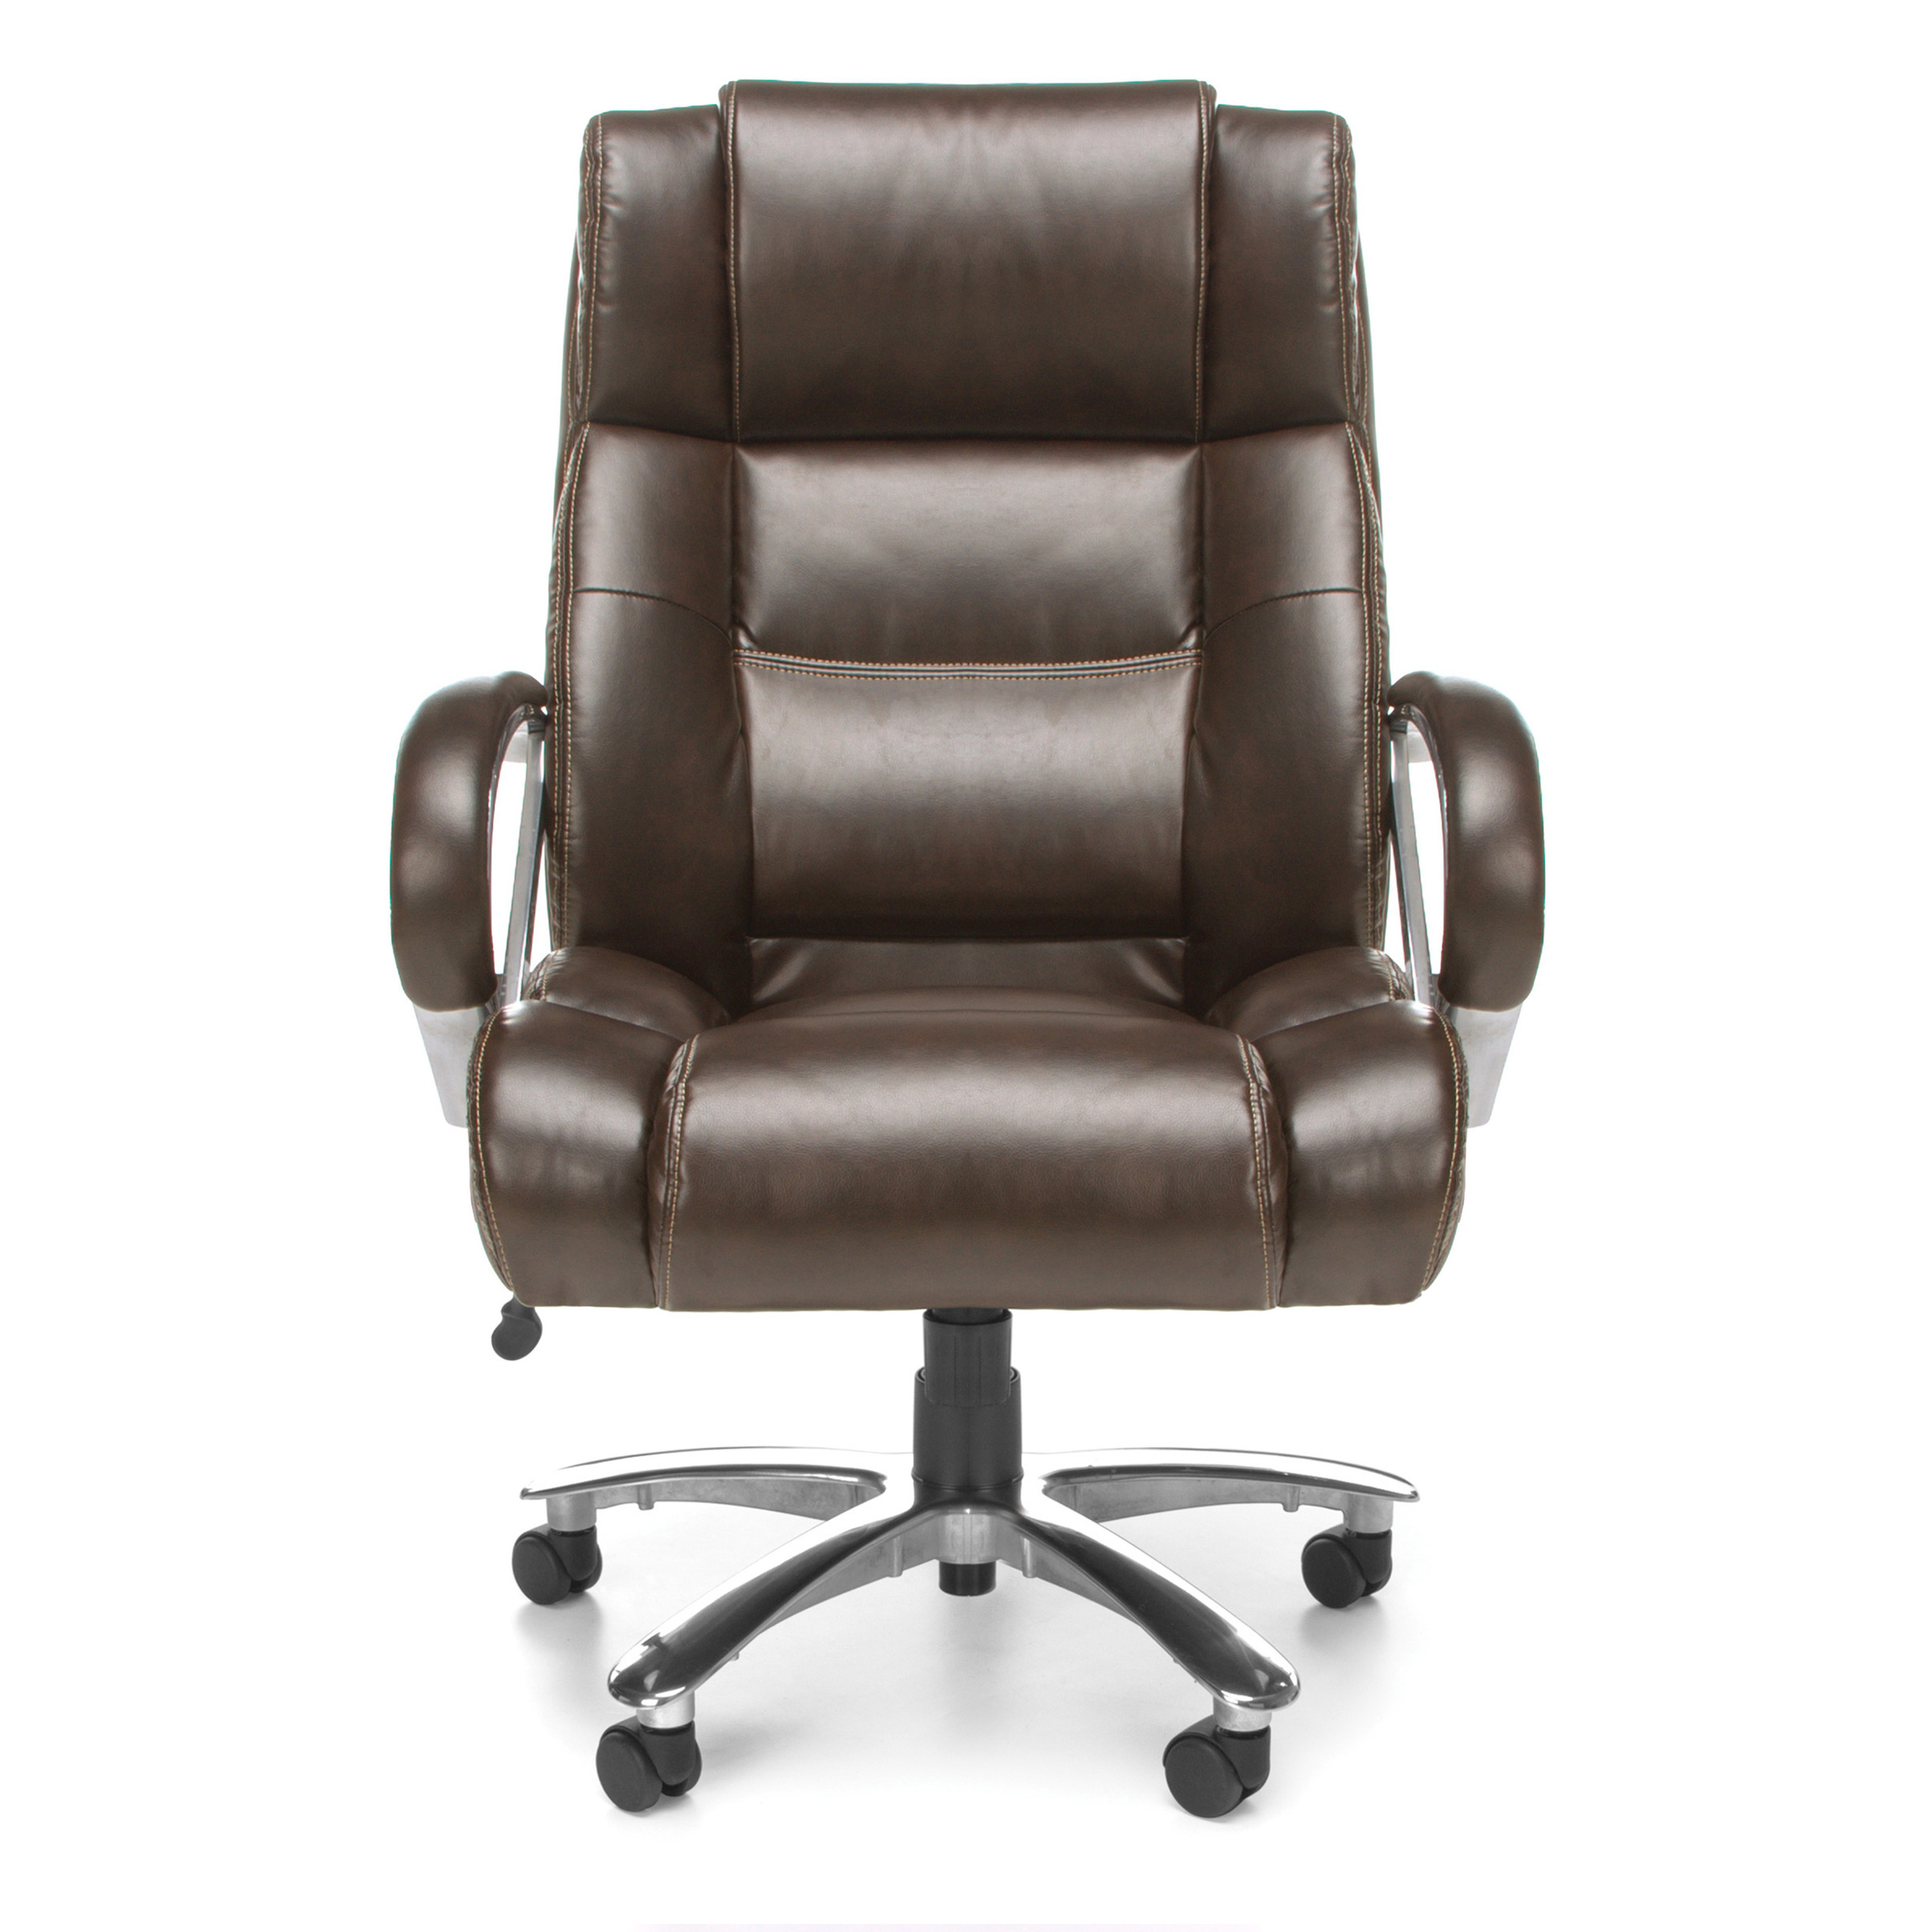 500 Lb Capacity Office Chair Atlas Big And Tall Chairs 500lbs